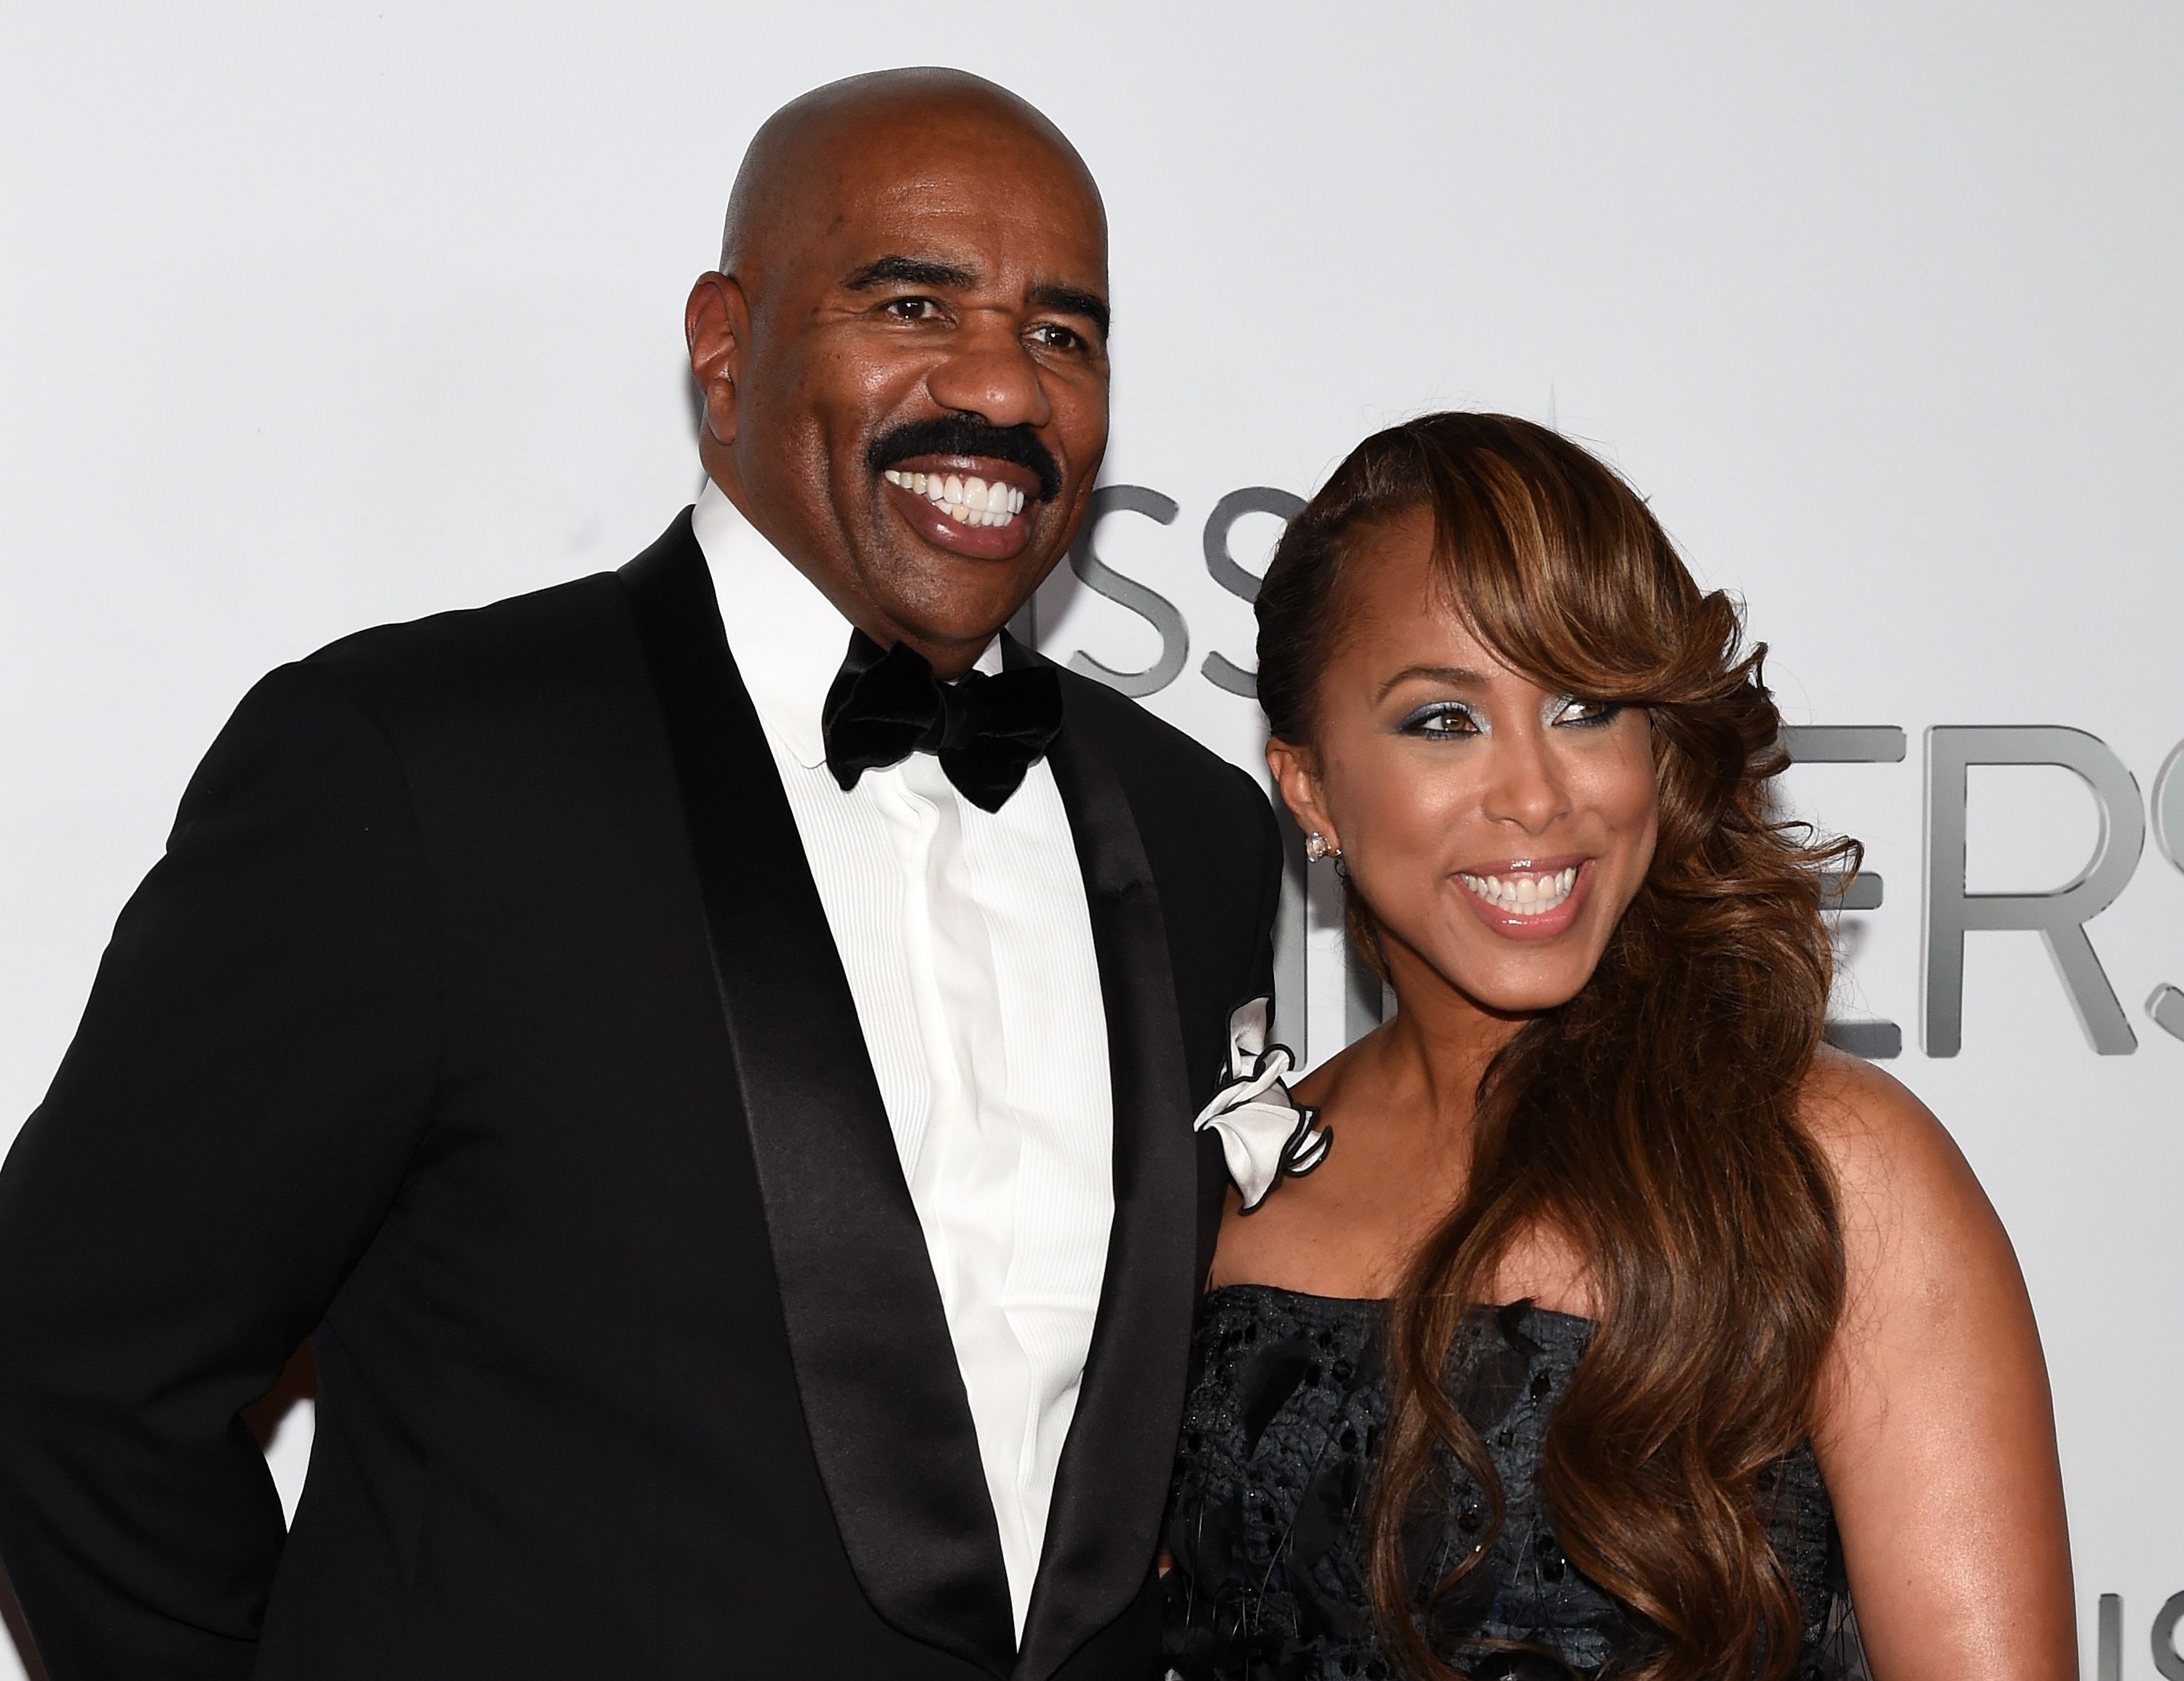 Television personality and host Steve Harvey and his wife Marjorie Harvey at the 2015 Miss Universe Pageant at Planet Hollywood Resort & Casino on December 20, 2015   Photo: Getty Images